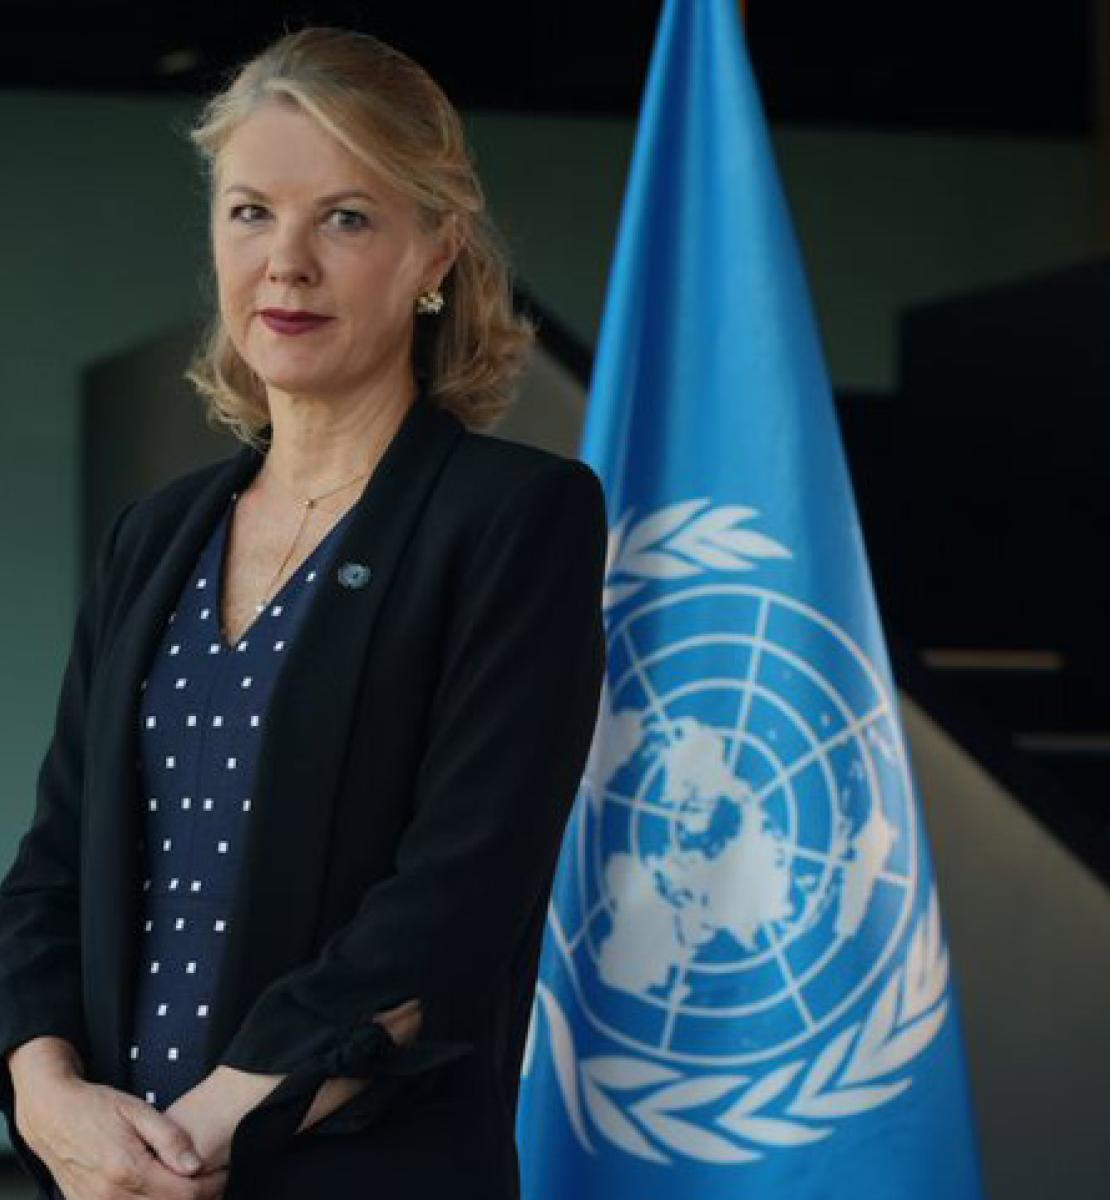 A woman in a blue dress and a black jacket stands in front of the United Nations flag.